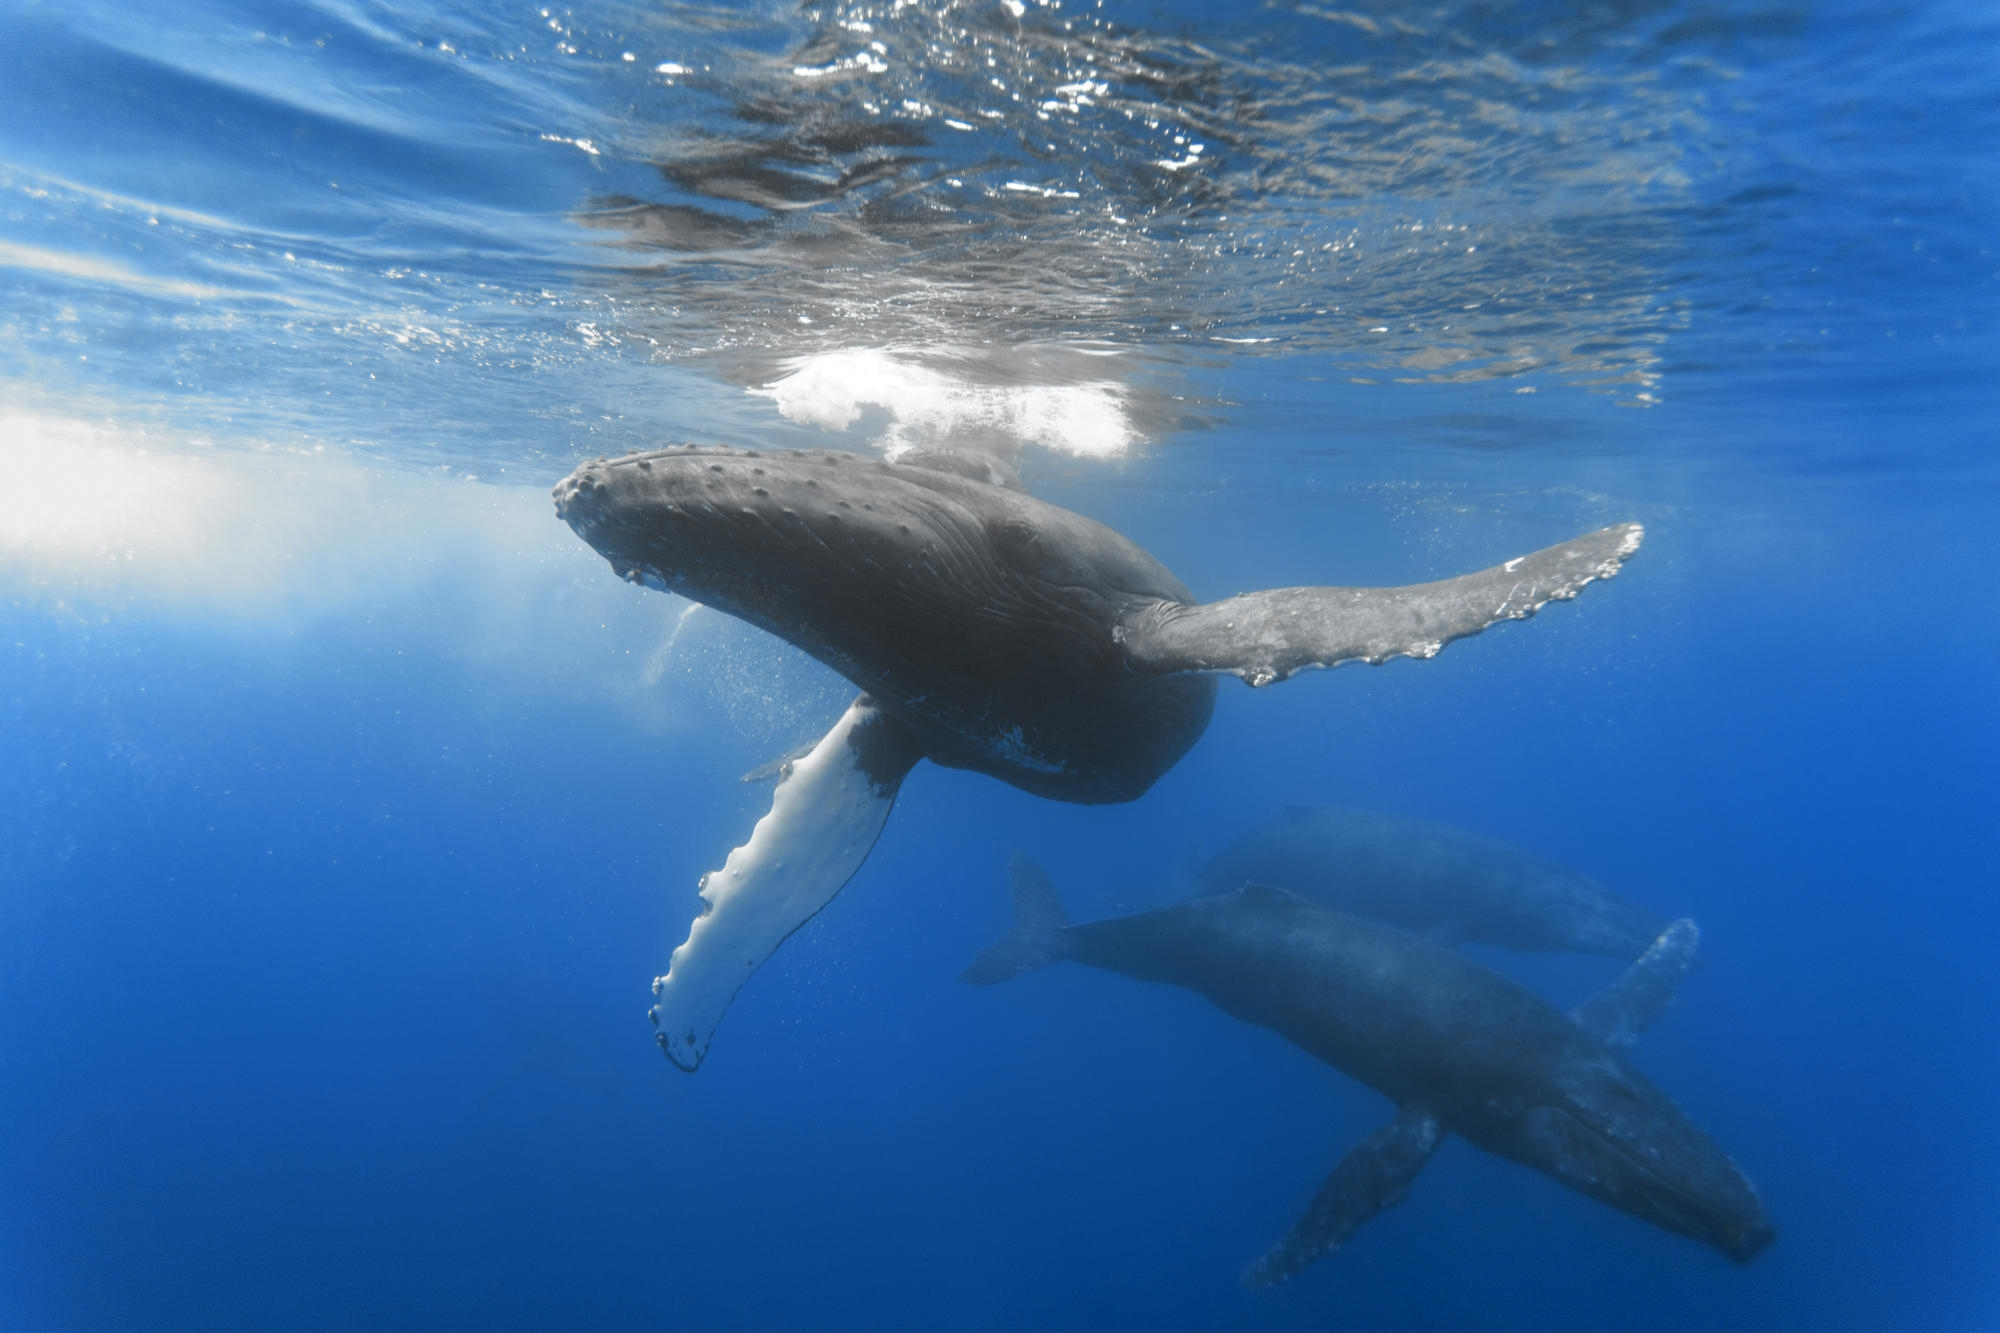 66160 download wallpaper Animals, Ocean, Whale, Depth, To Swim, Swim, Underwater World screensavers and pictures for free